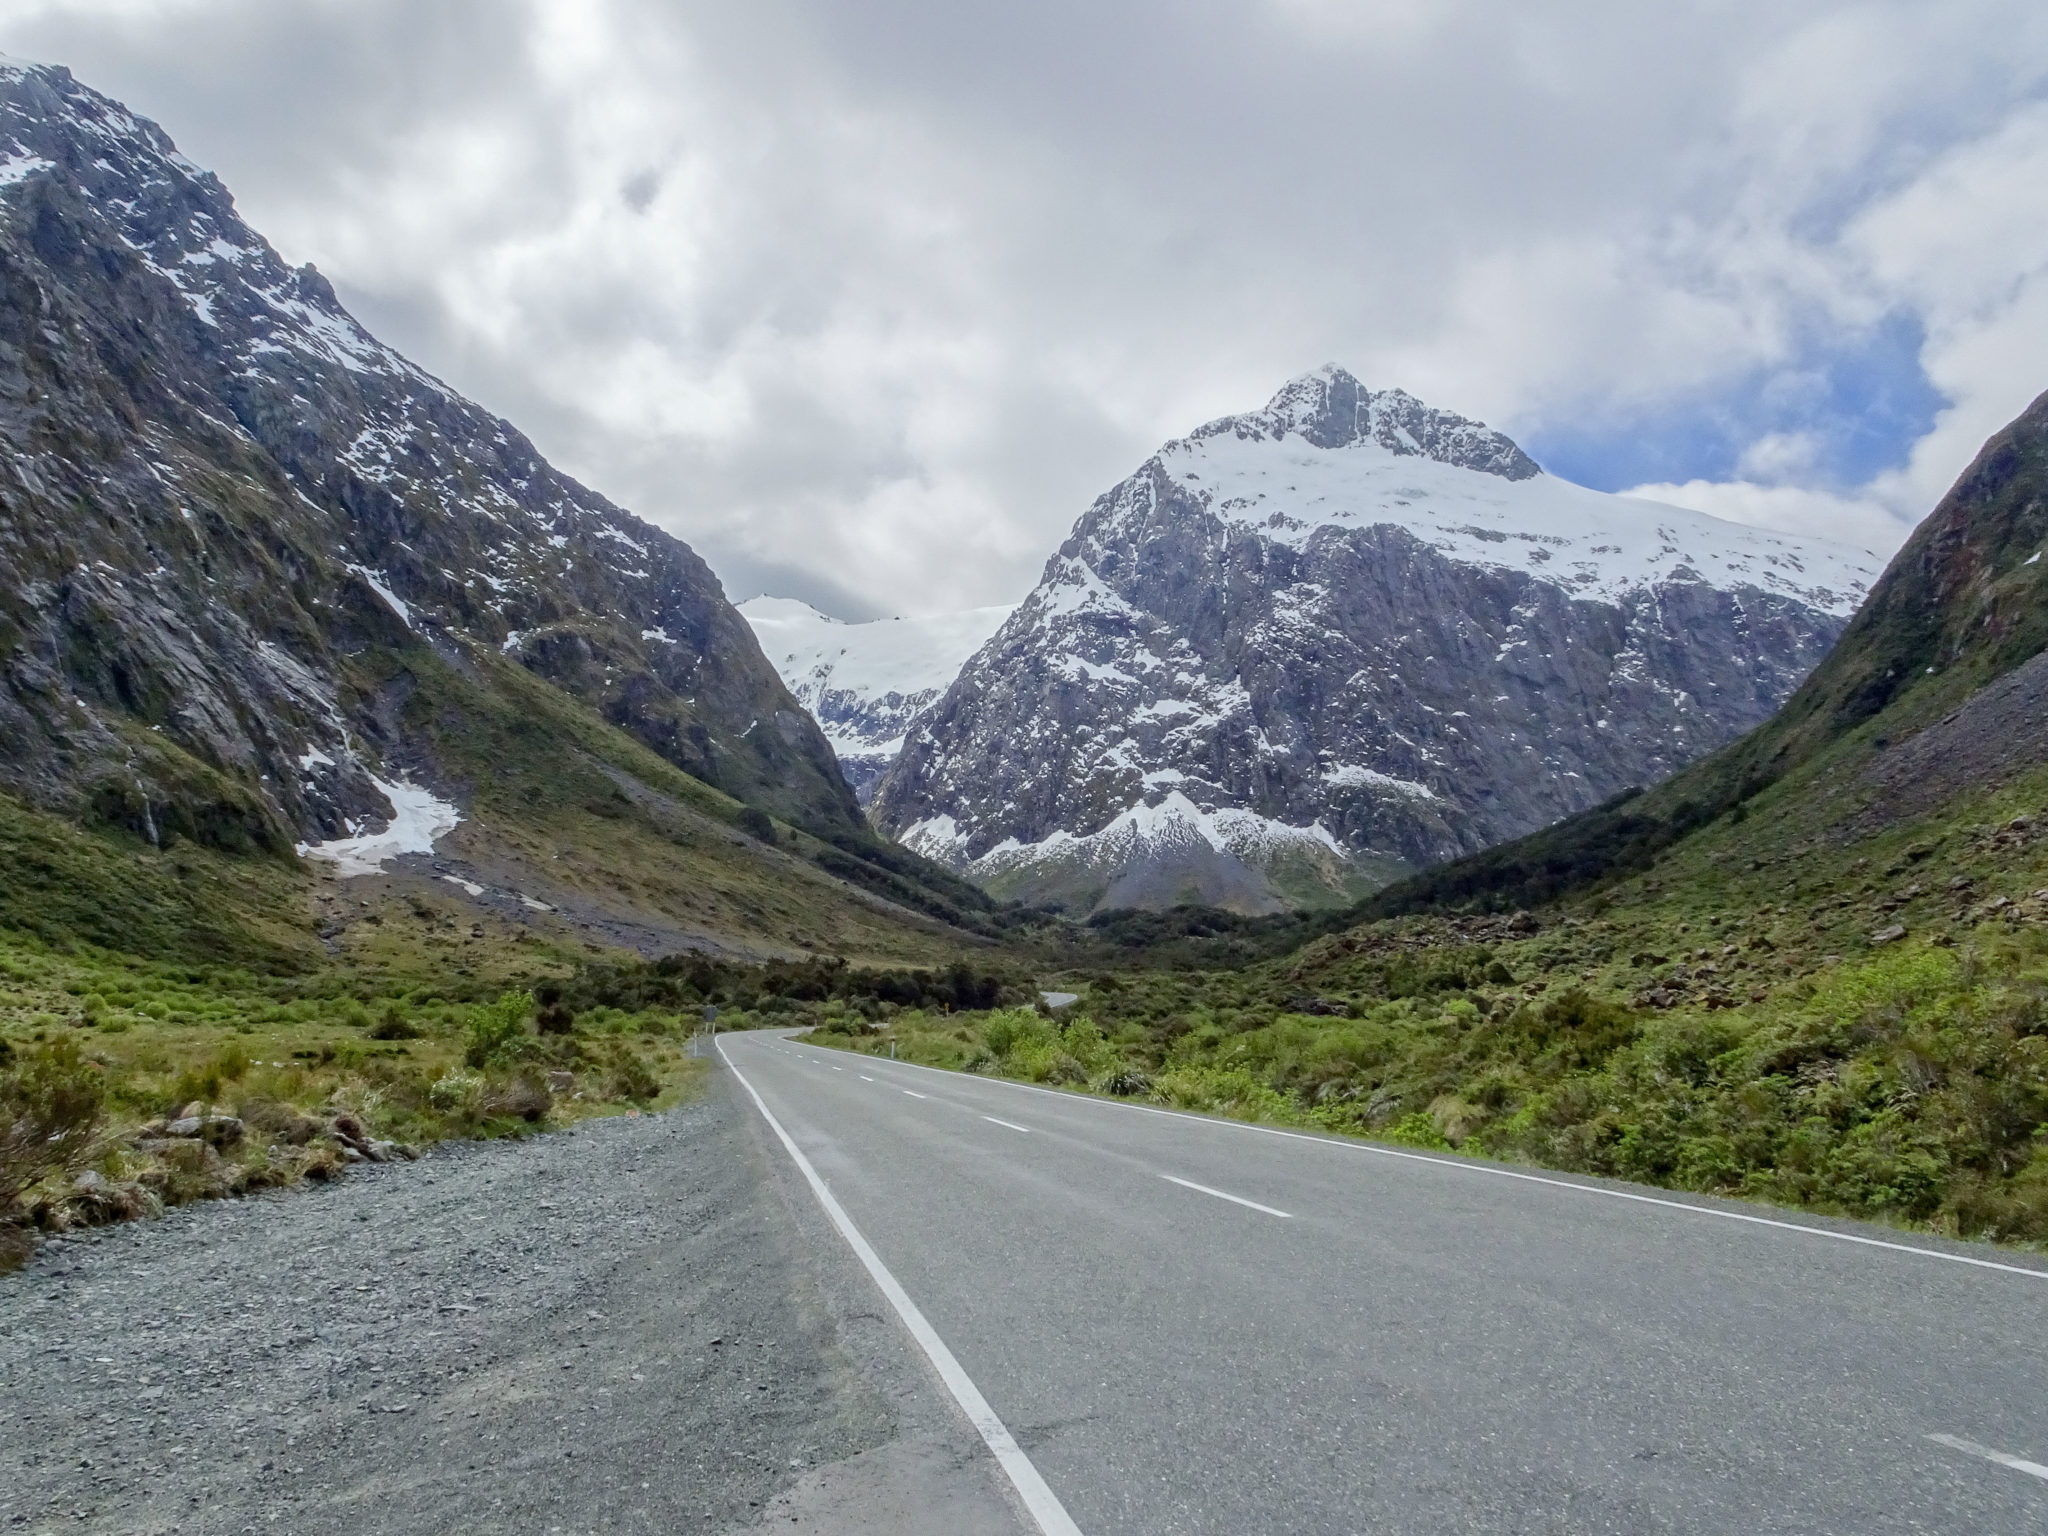 Postcard: Milford Sound in New Zealand